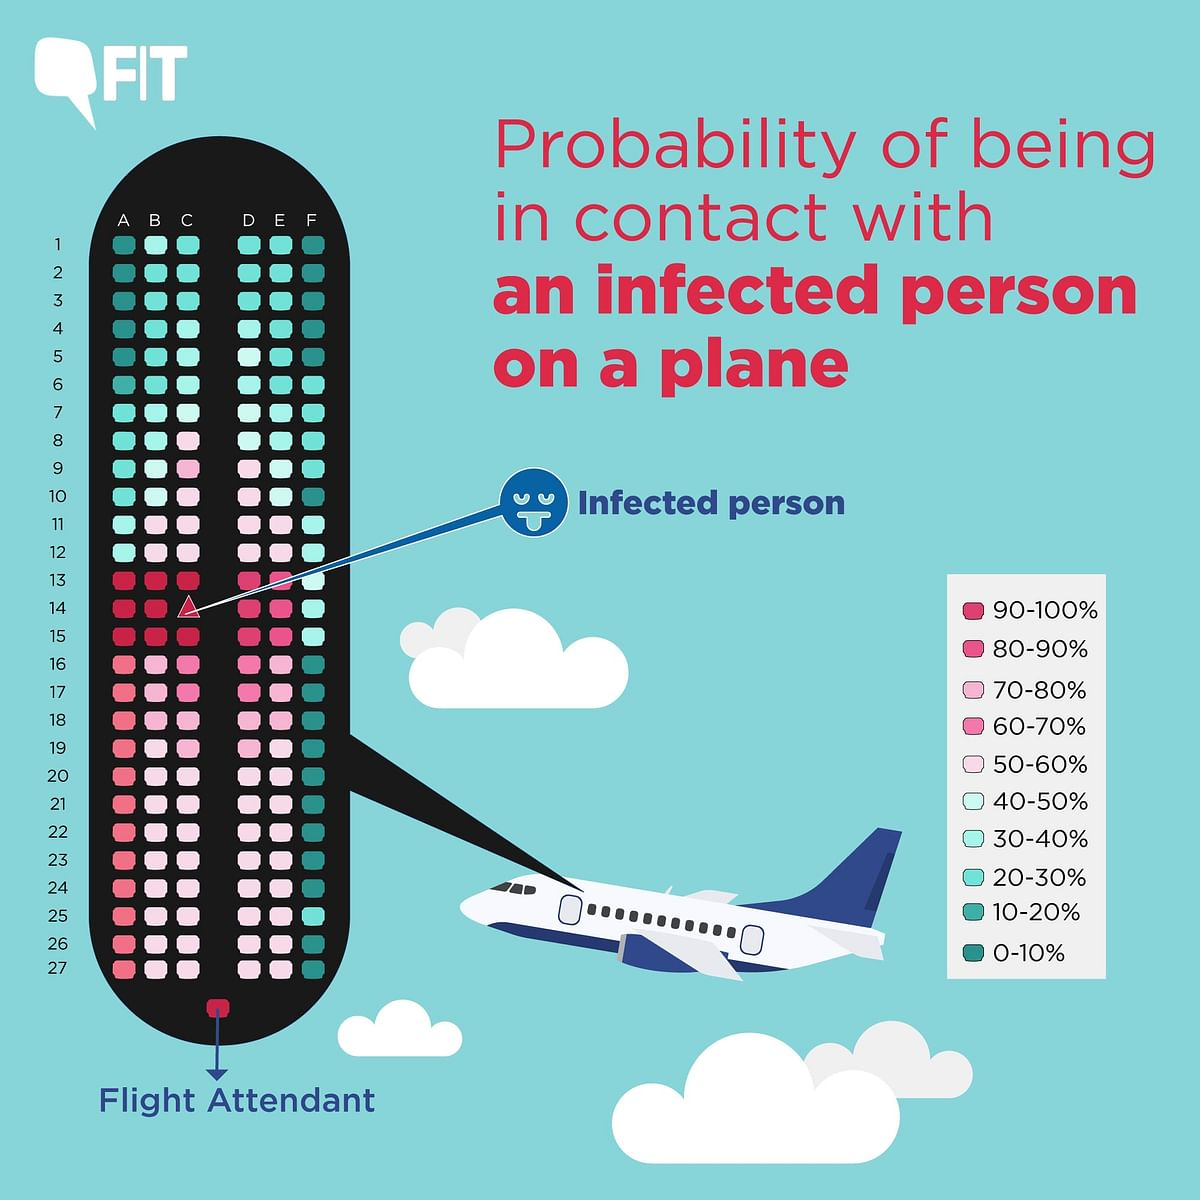 Coronavirus: What are the Chances One Gets Infected in a Plane?